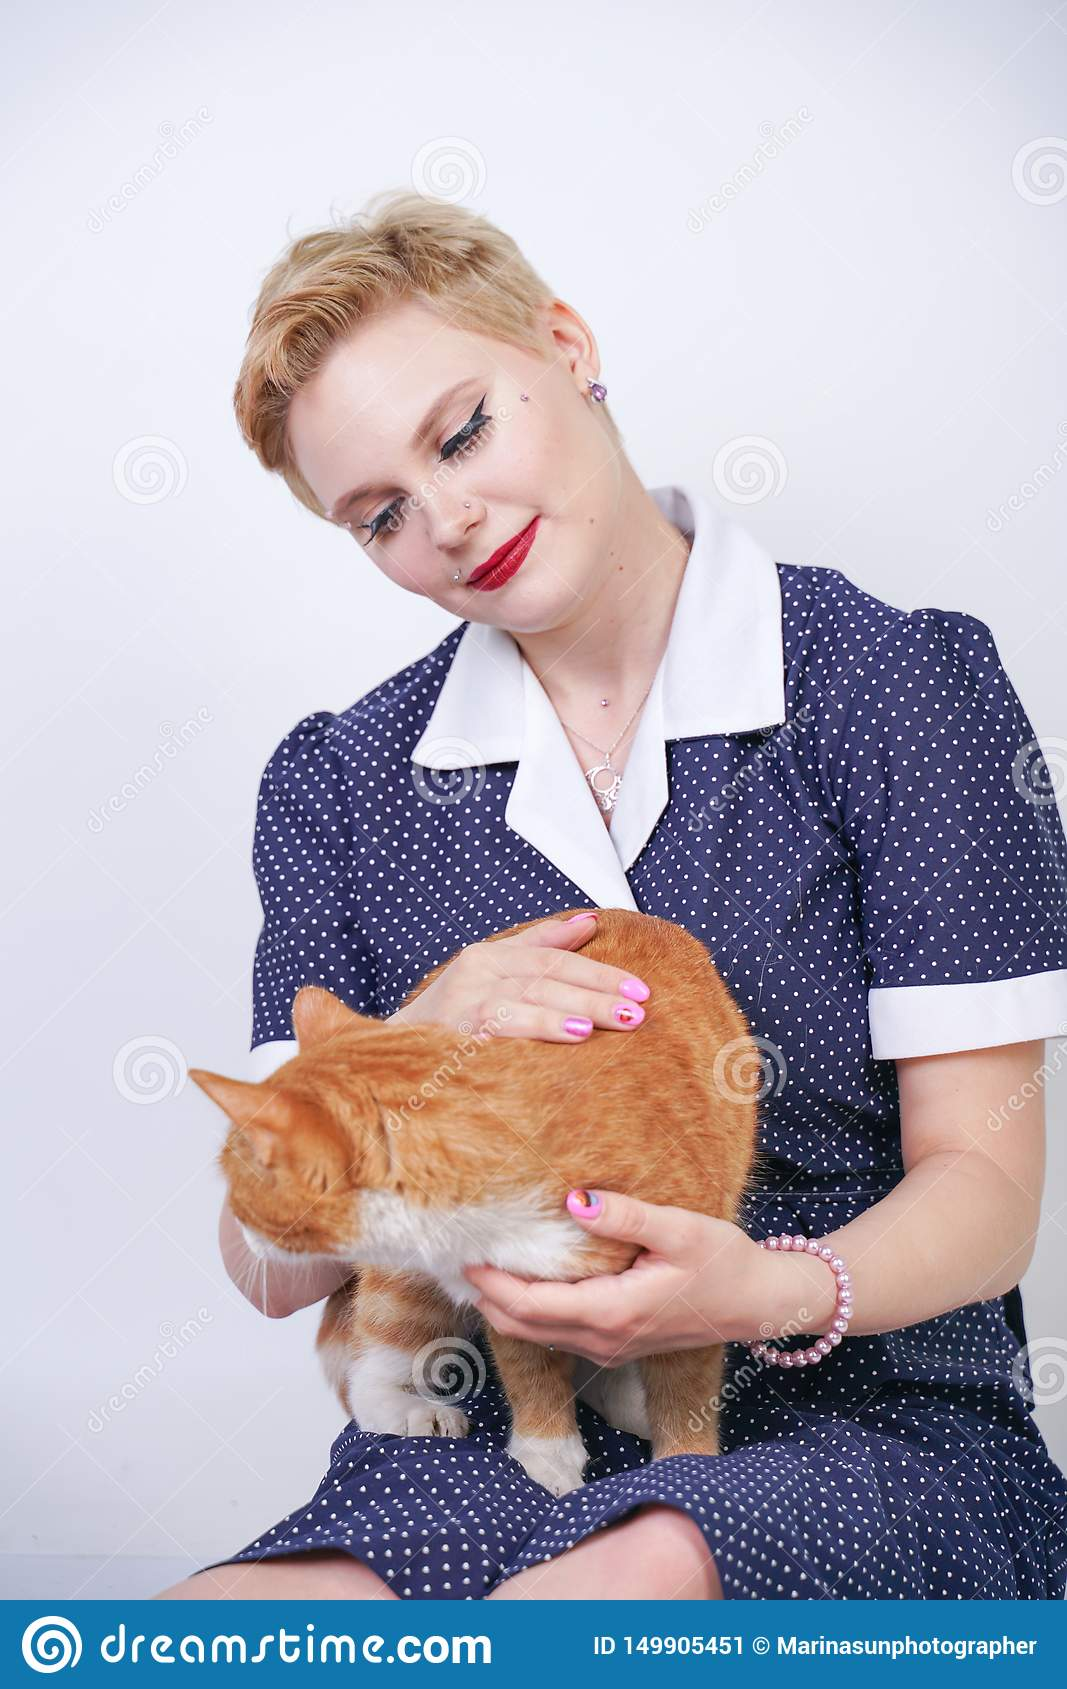 Cute kind woman with short hair in pinup polka dot dress holding her beloved pet on a white background in the Studio. plus size ad